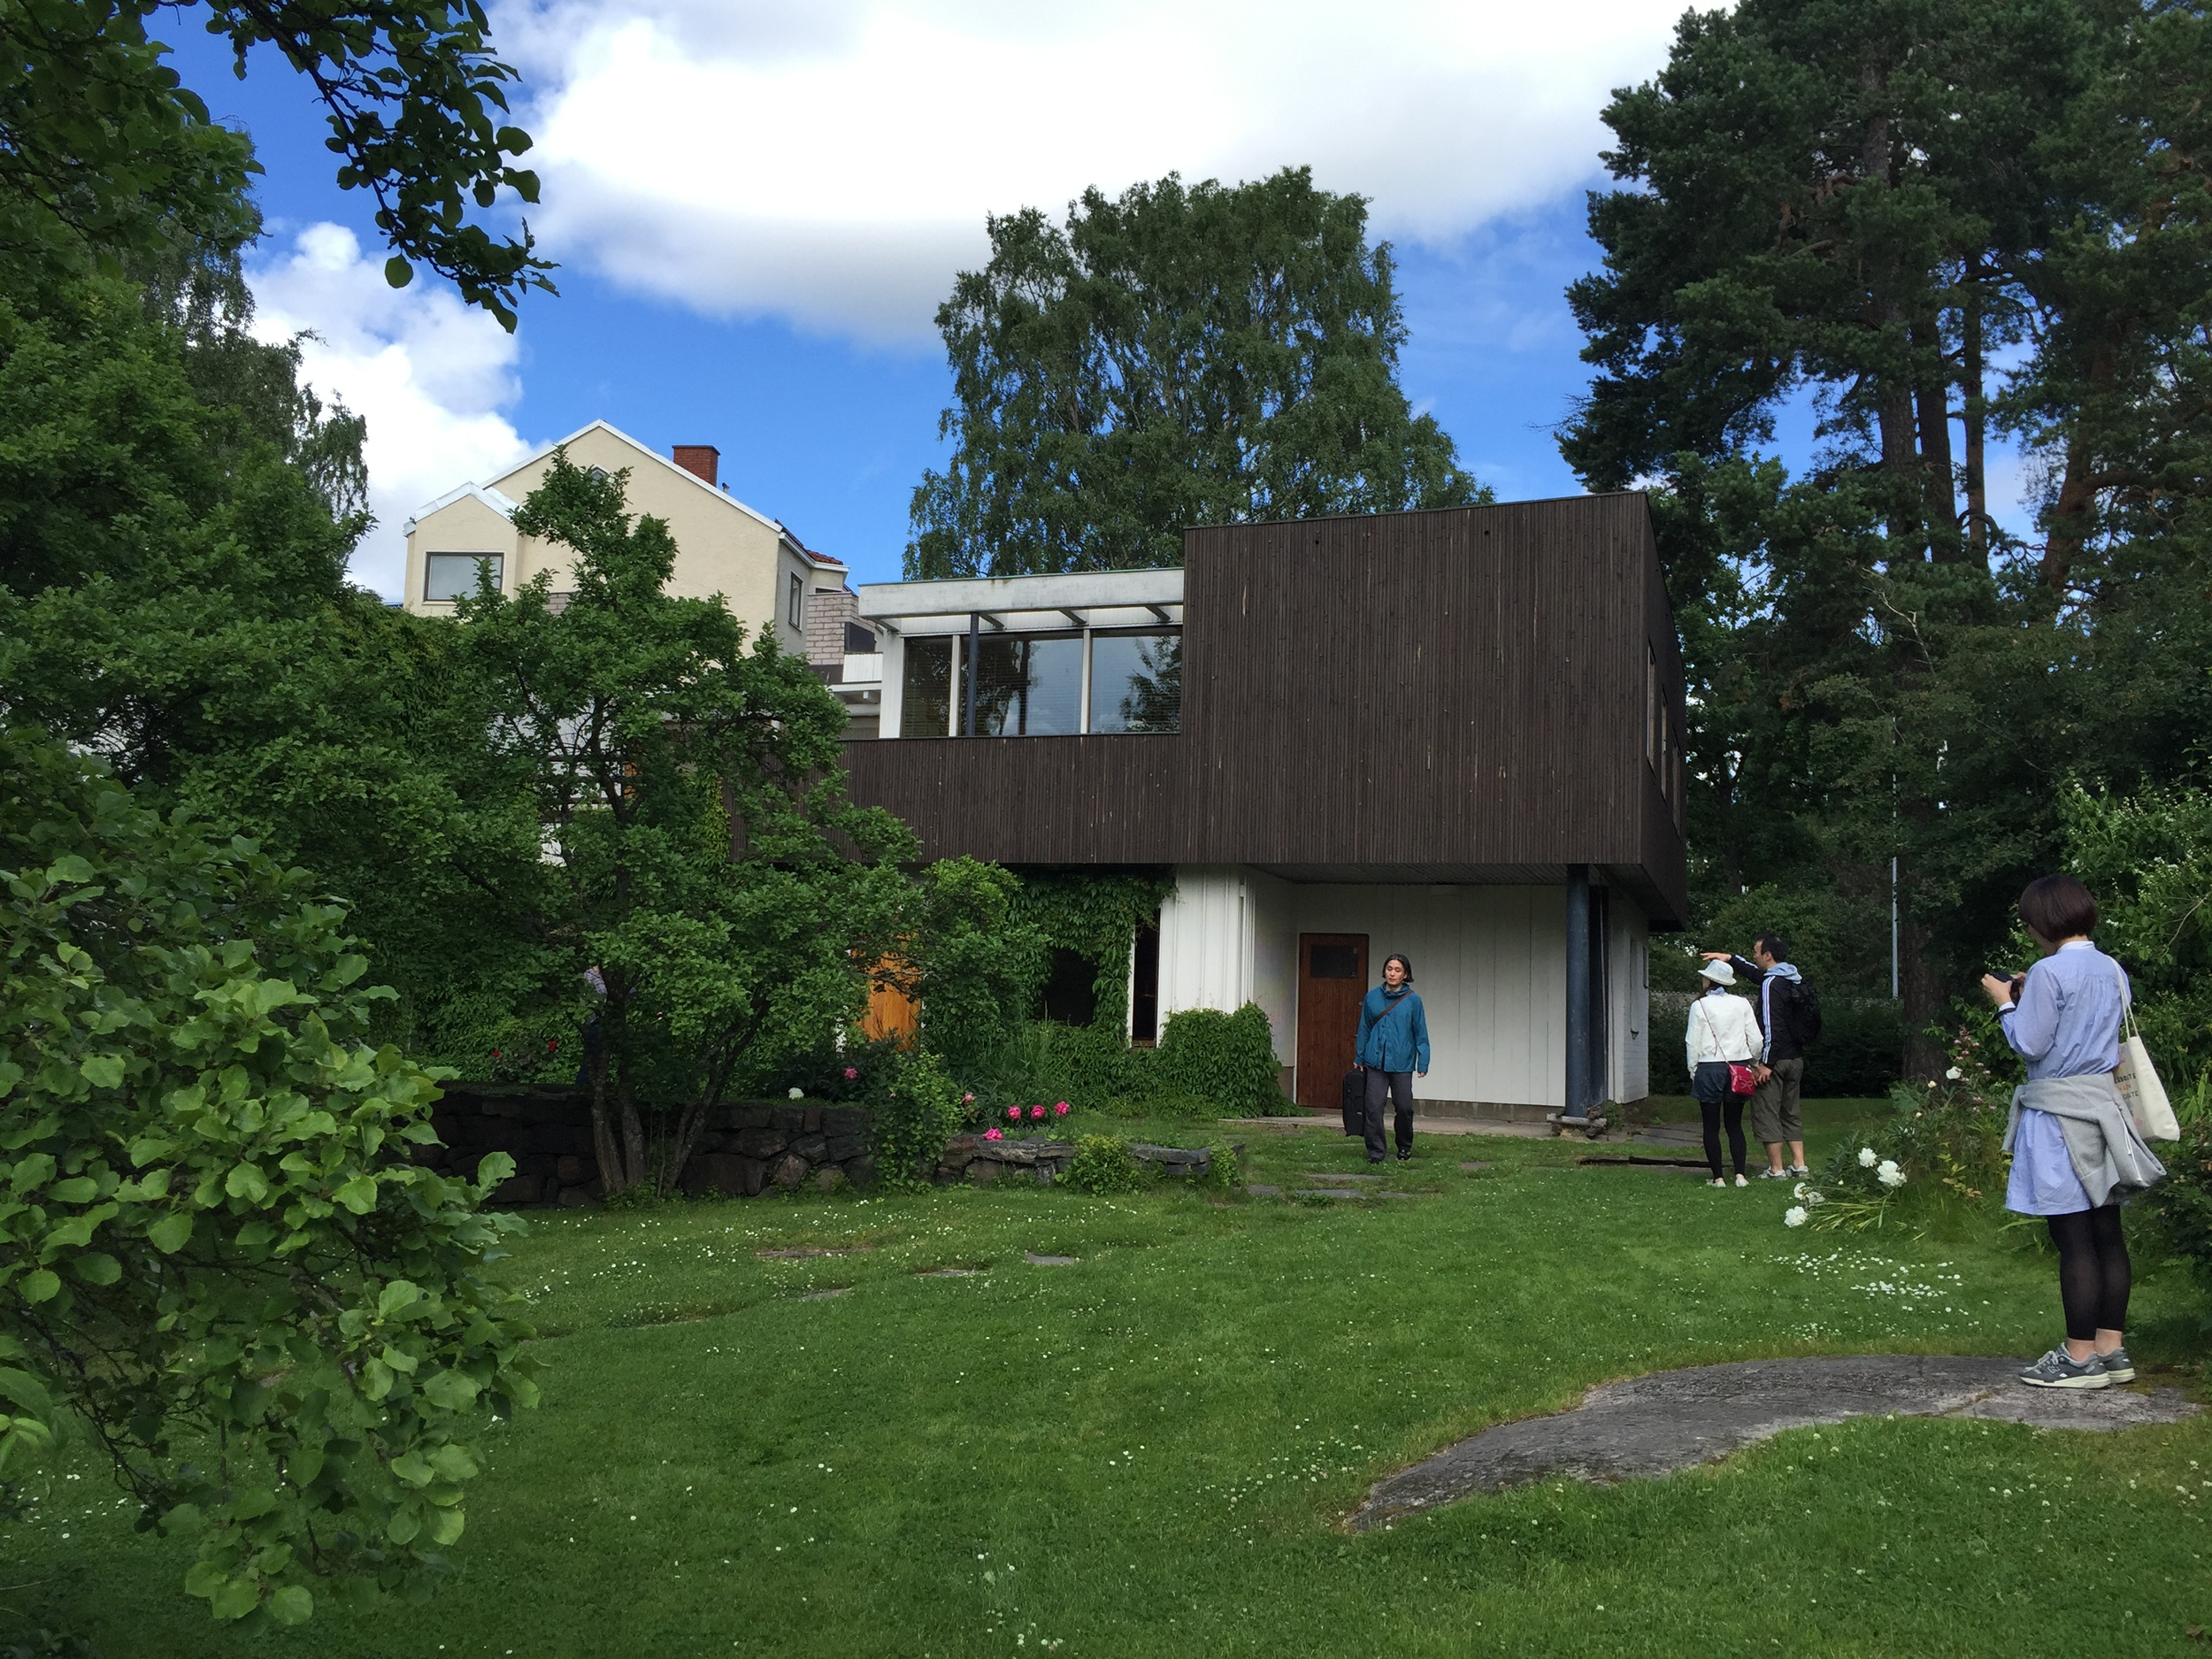 South/rear facade / Aalto House / 11 July 2015